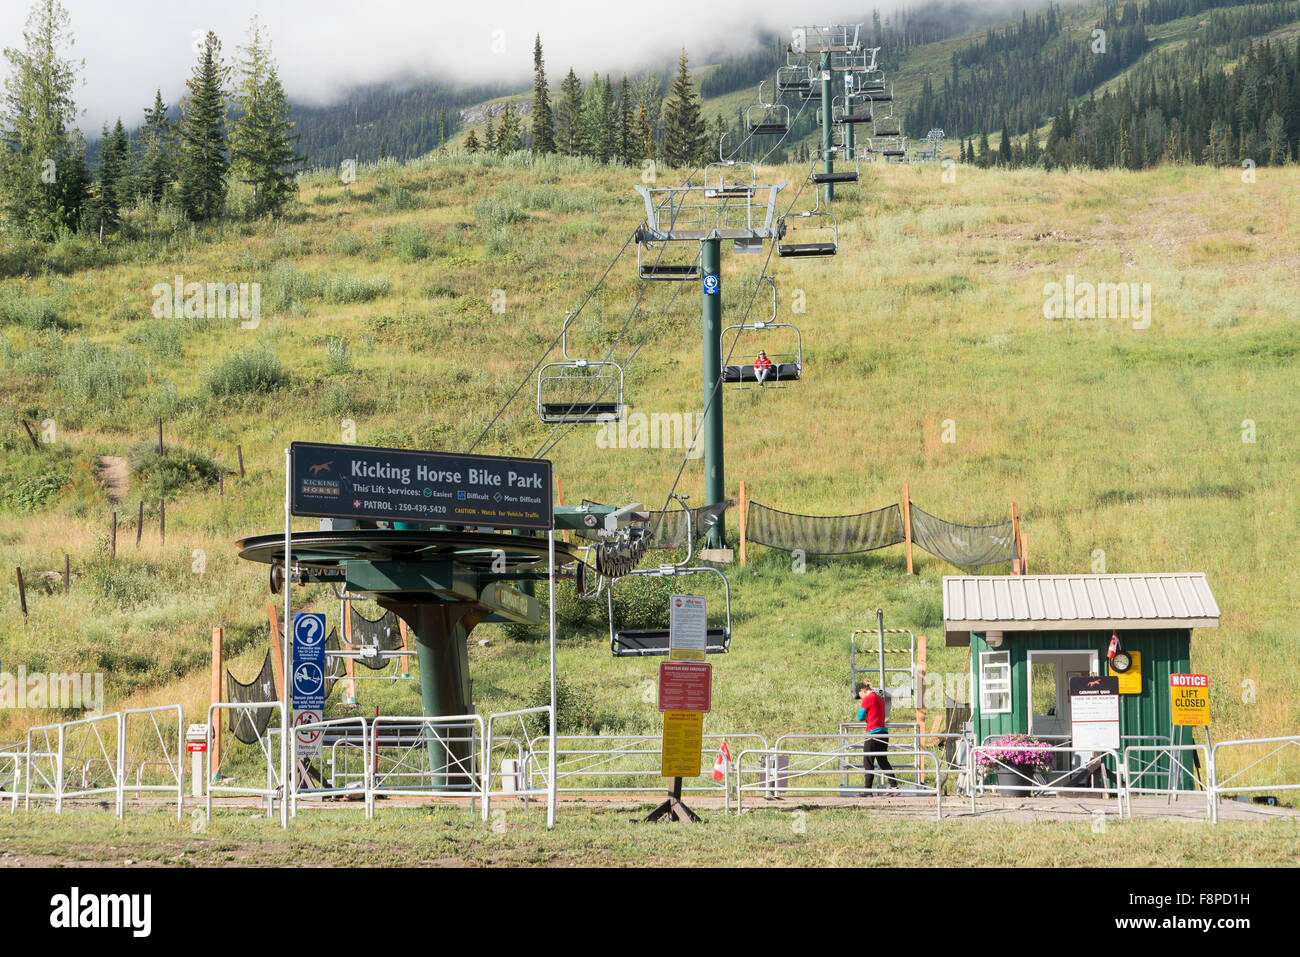 Kicking Horse Resort, near Golden, British Columbia, Canada - Stock Image